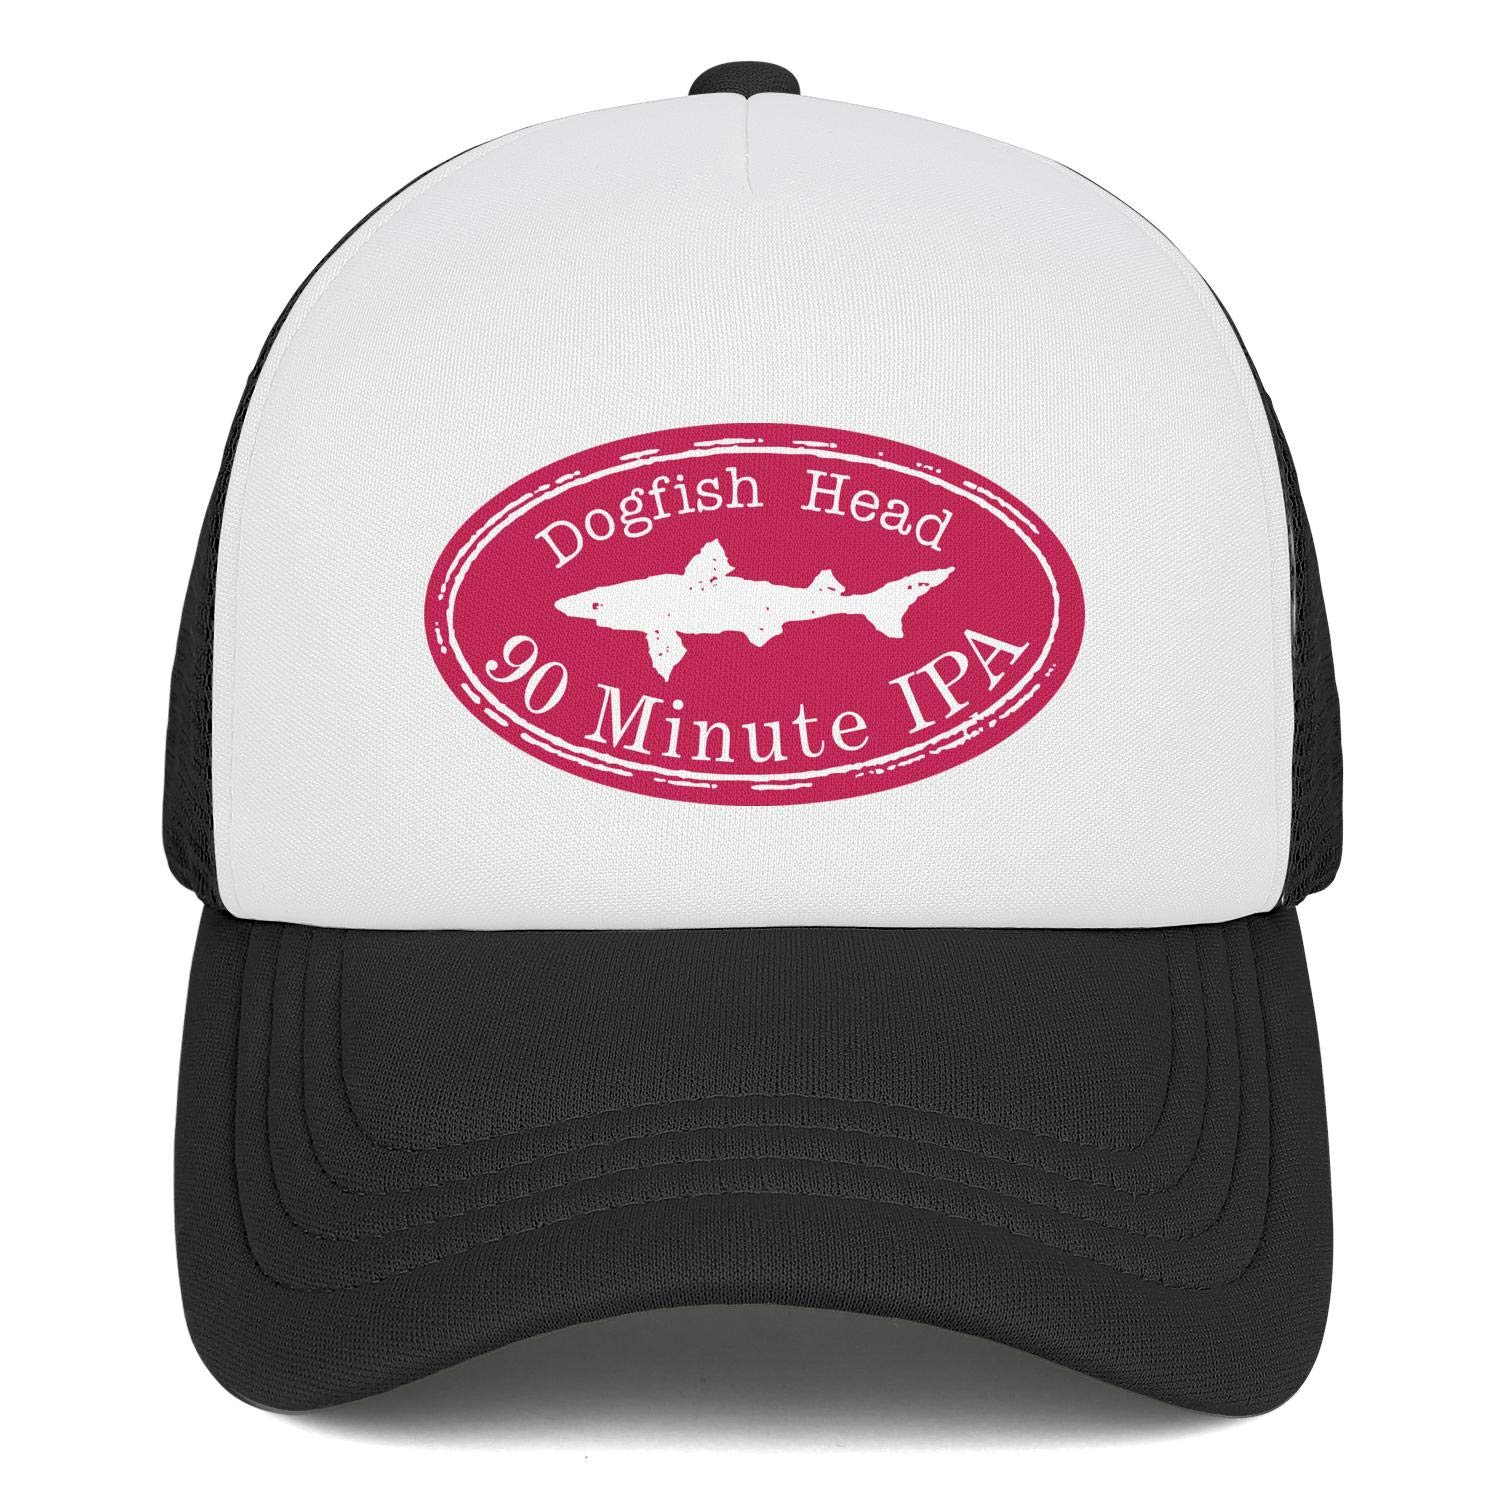 Adjustable Baseball Cap Curved Trucker Hat All Cotton Personalitycaps Mens Dogfish-Head-Logo